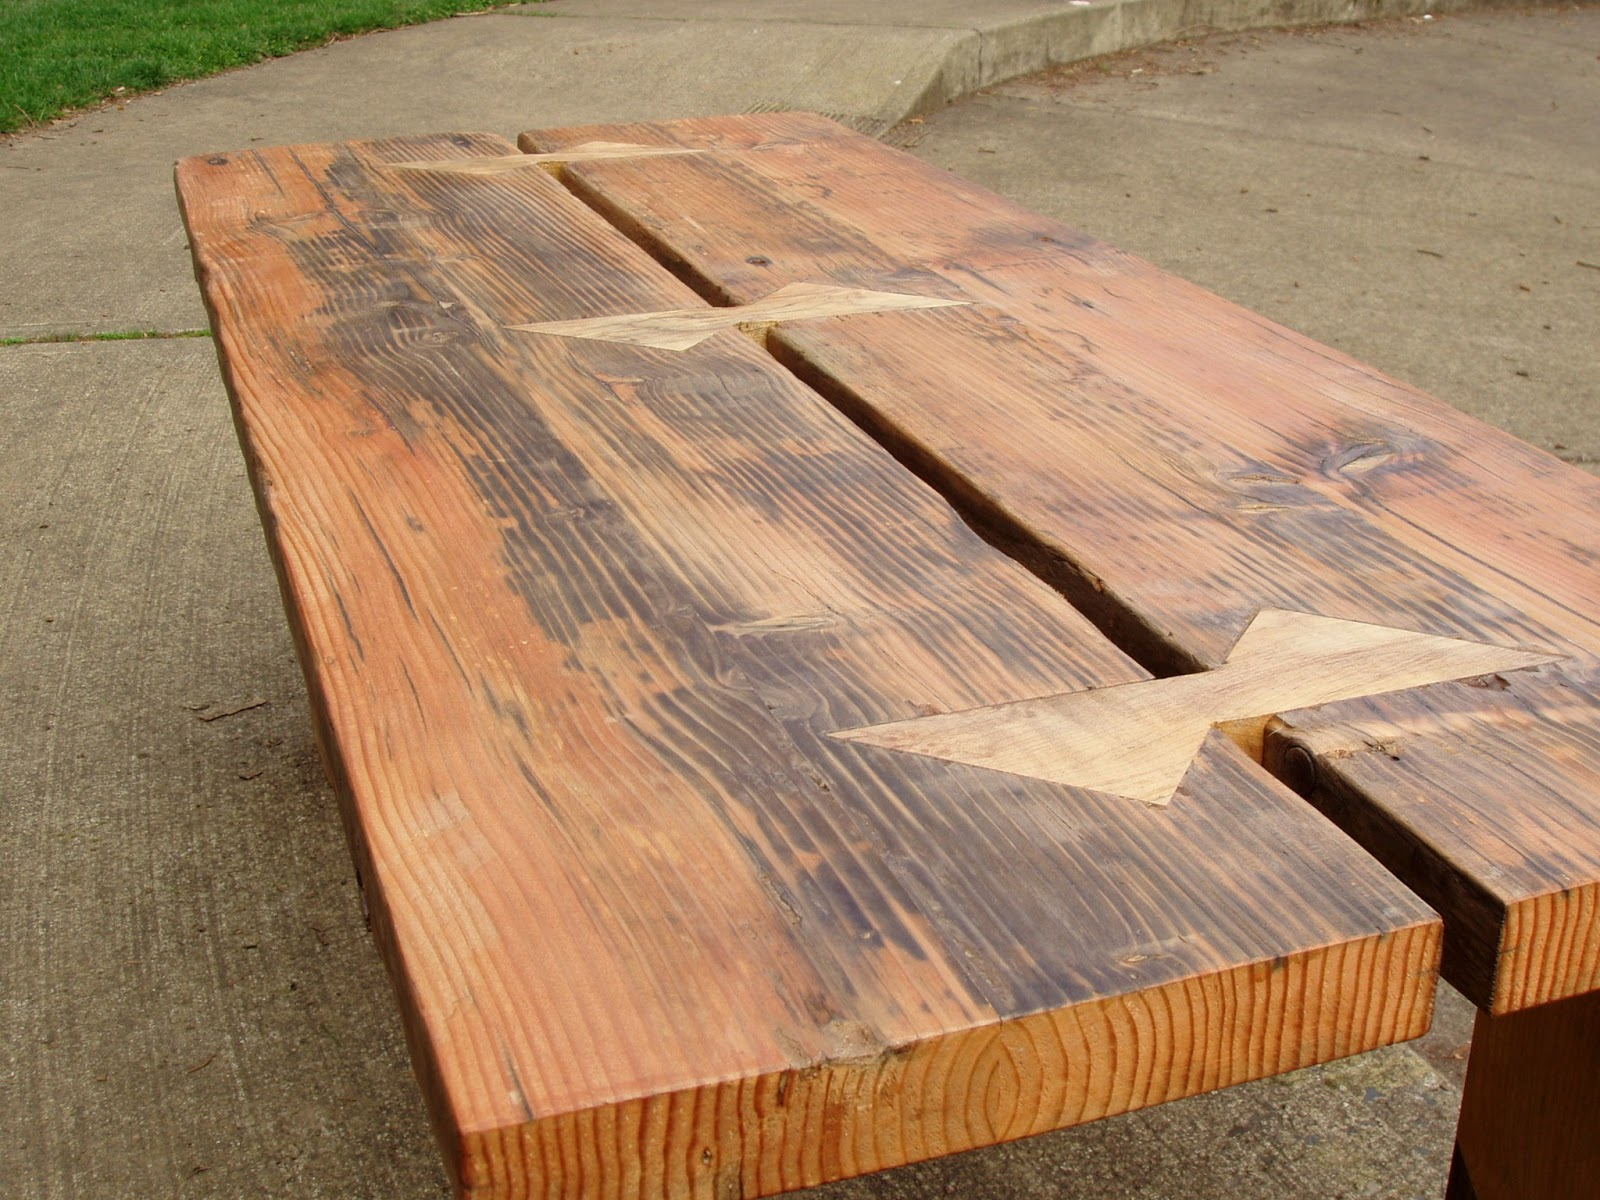 Reclaimed wood furniture portland oregon Reclaimed wood furniture portland